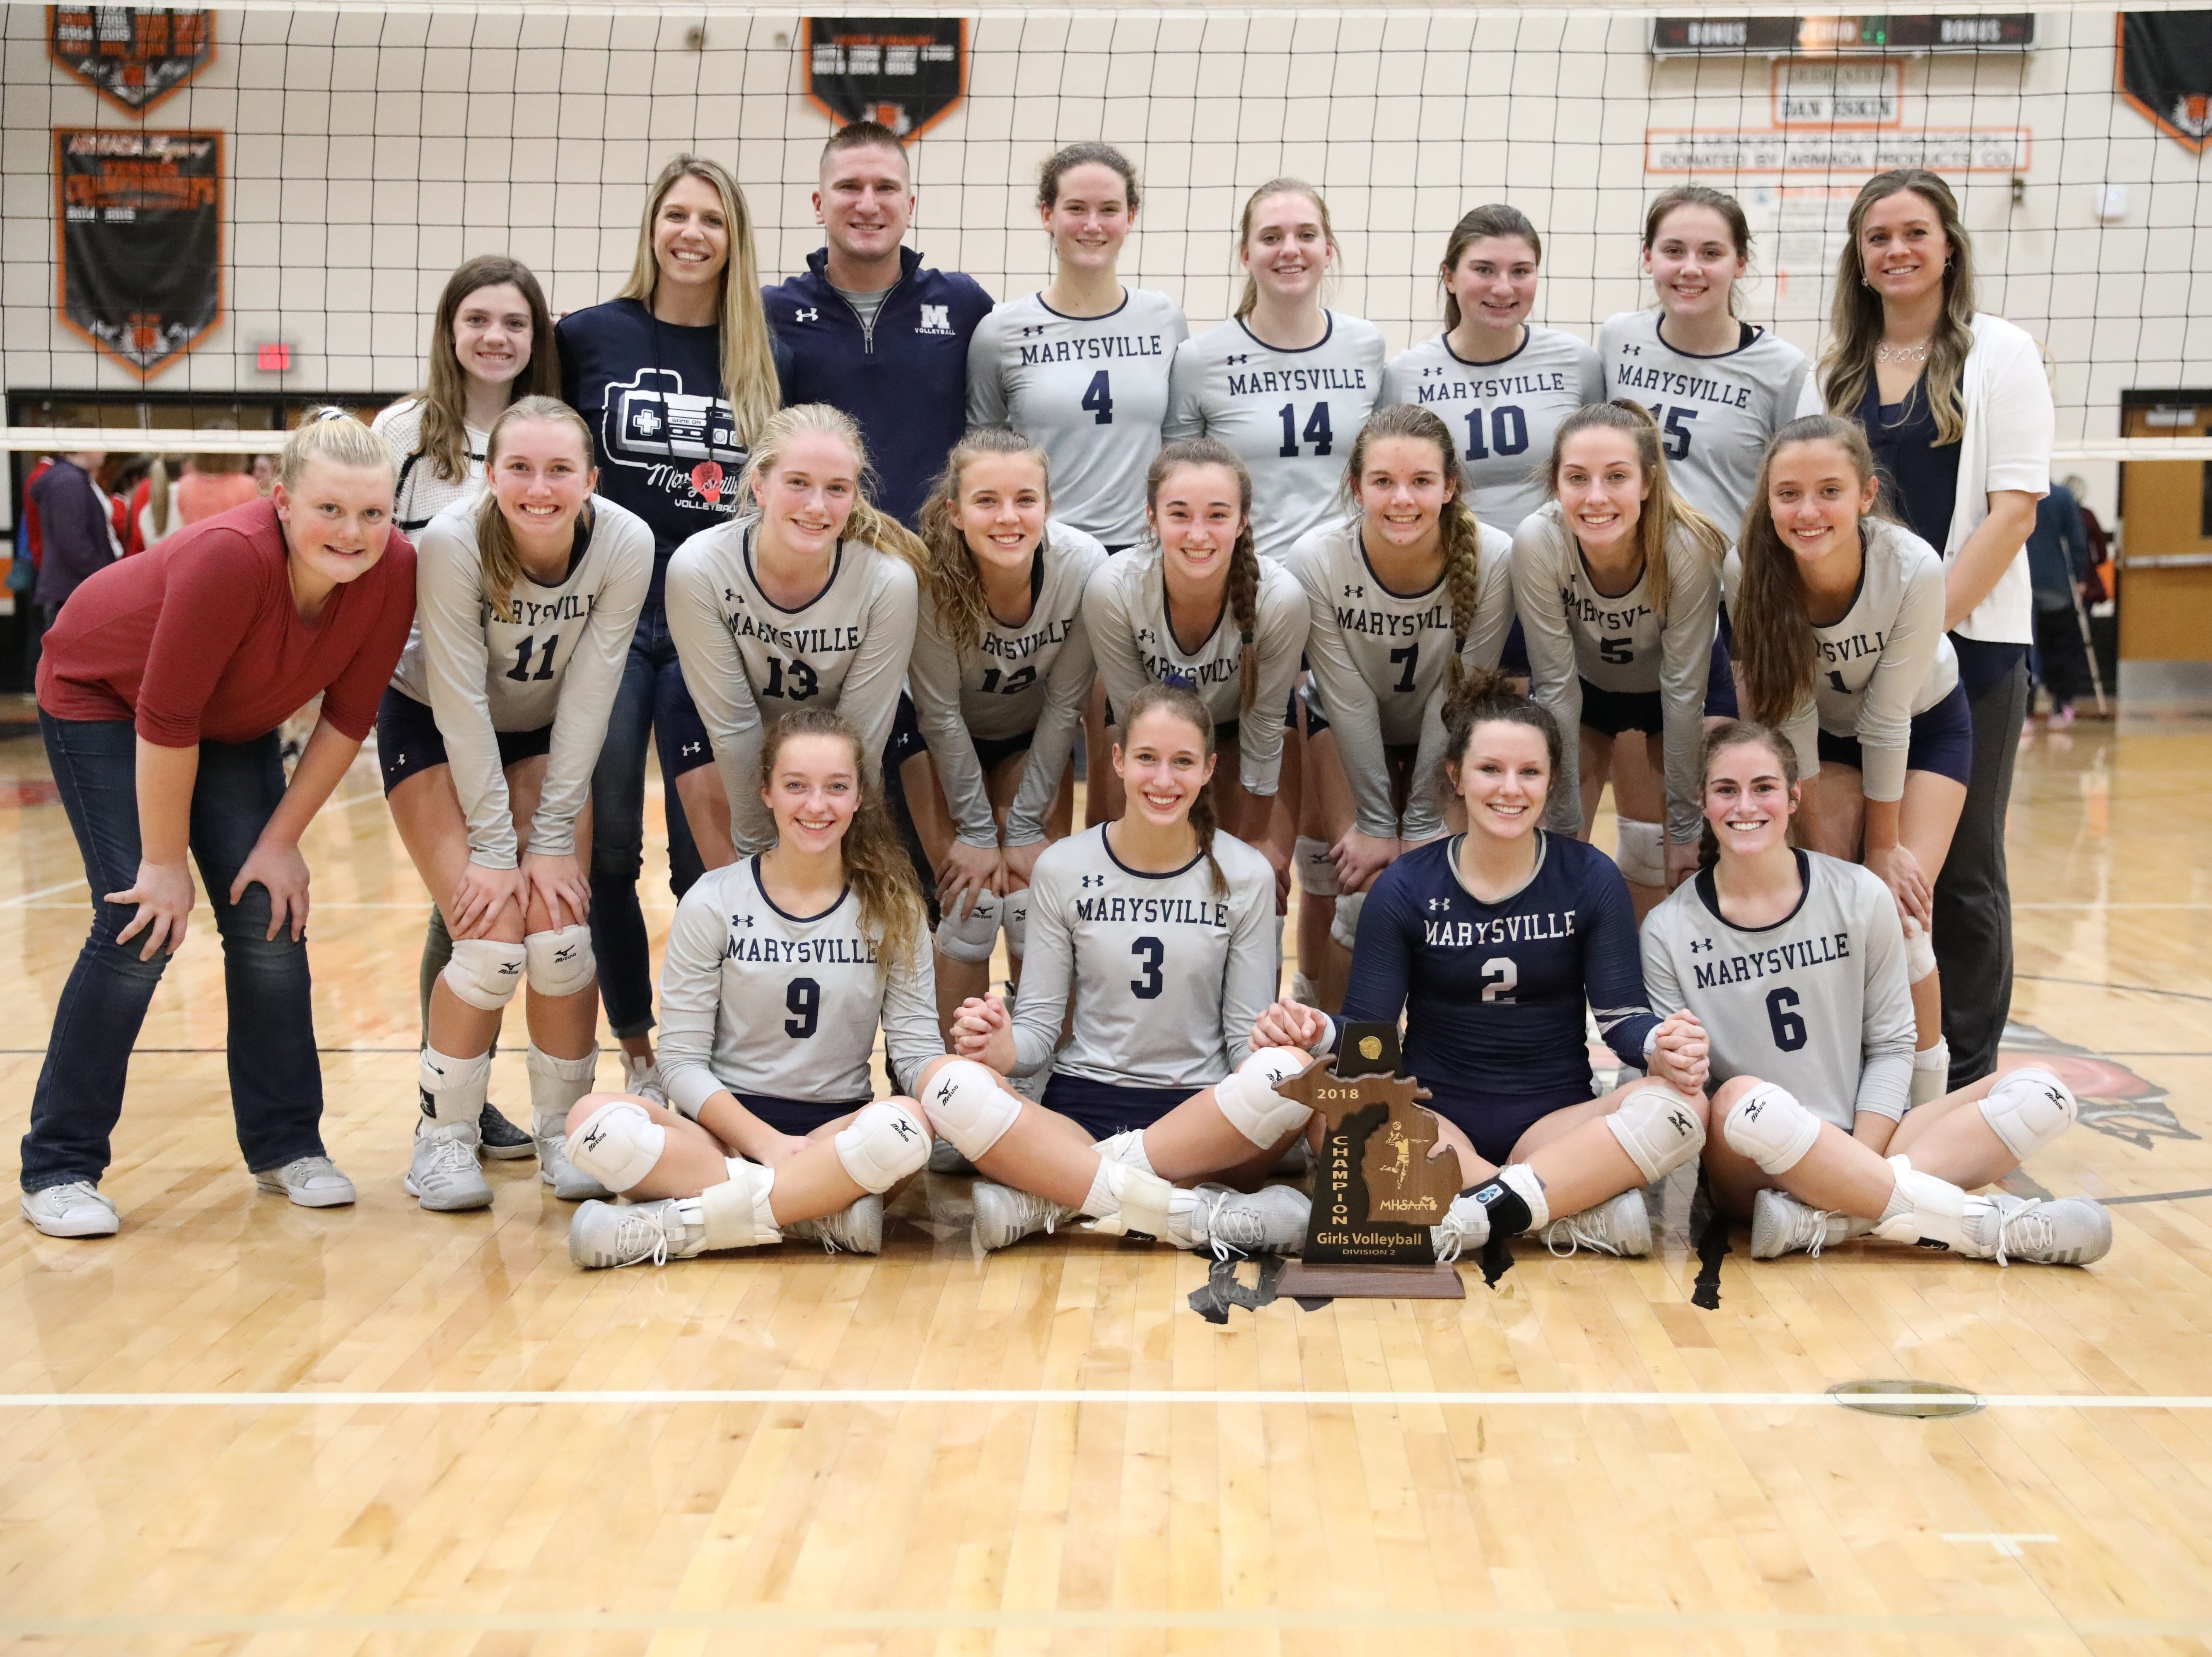 District Volleyball: Marysville claims Division 2 title